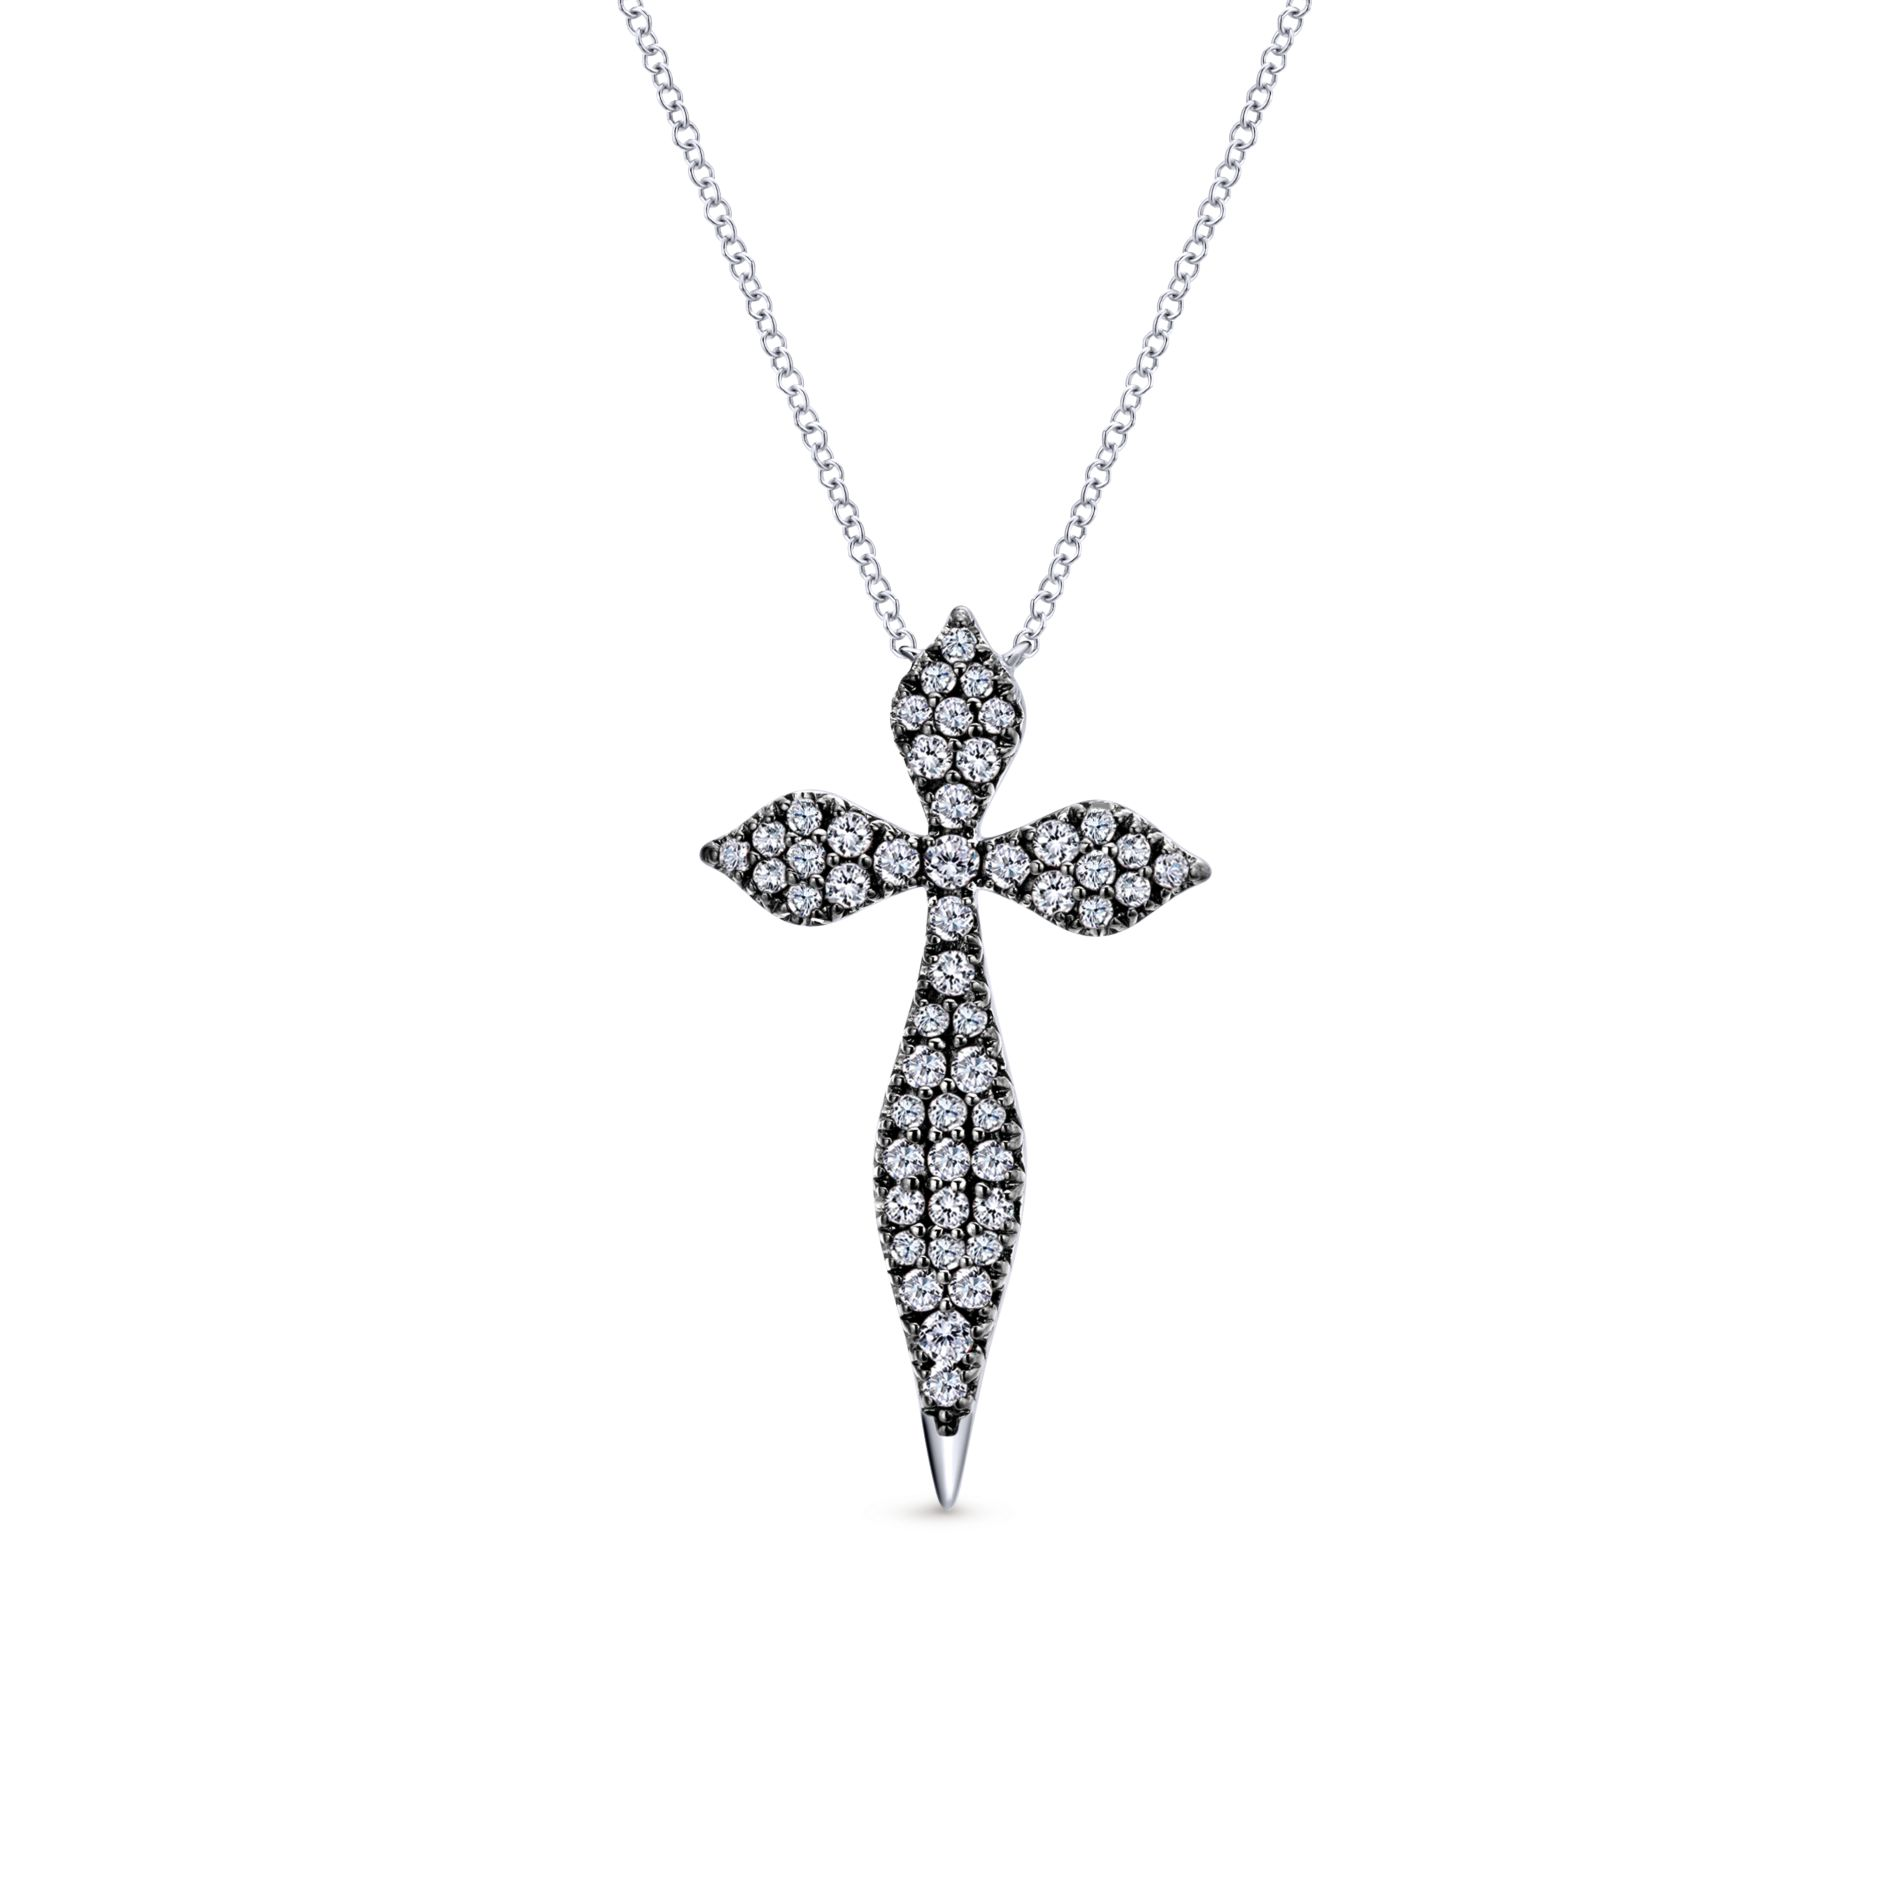 Necklaces - SILVER CROSS WHITE SAPPHIRE NECKLACE